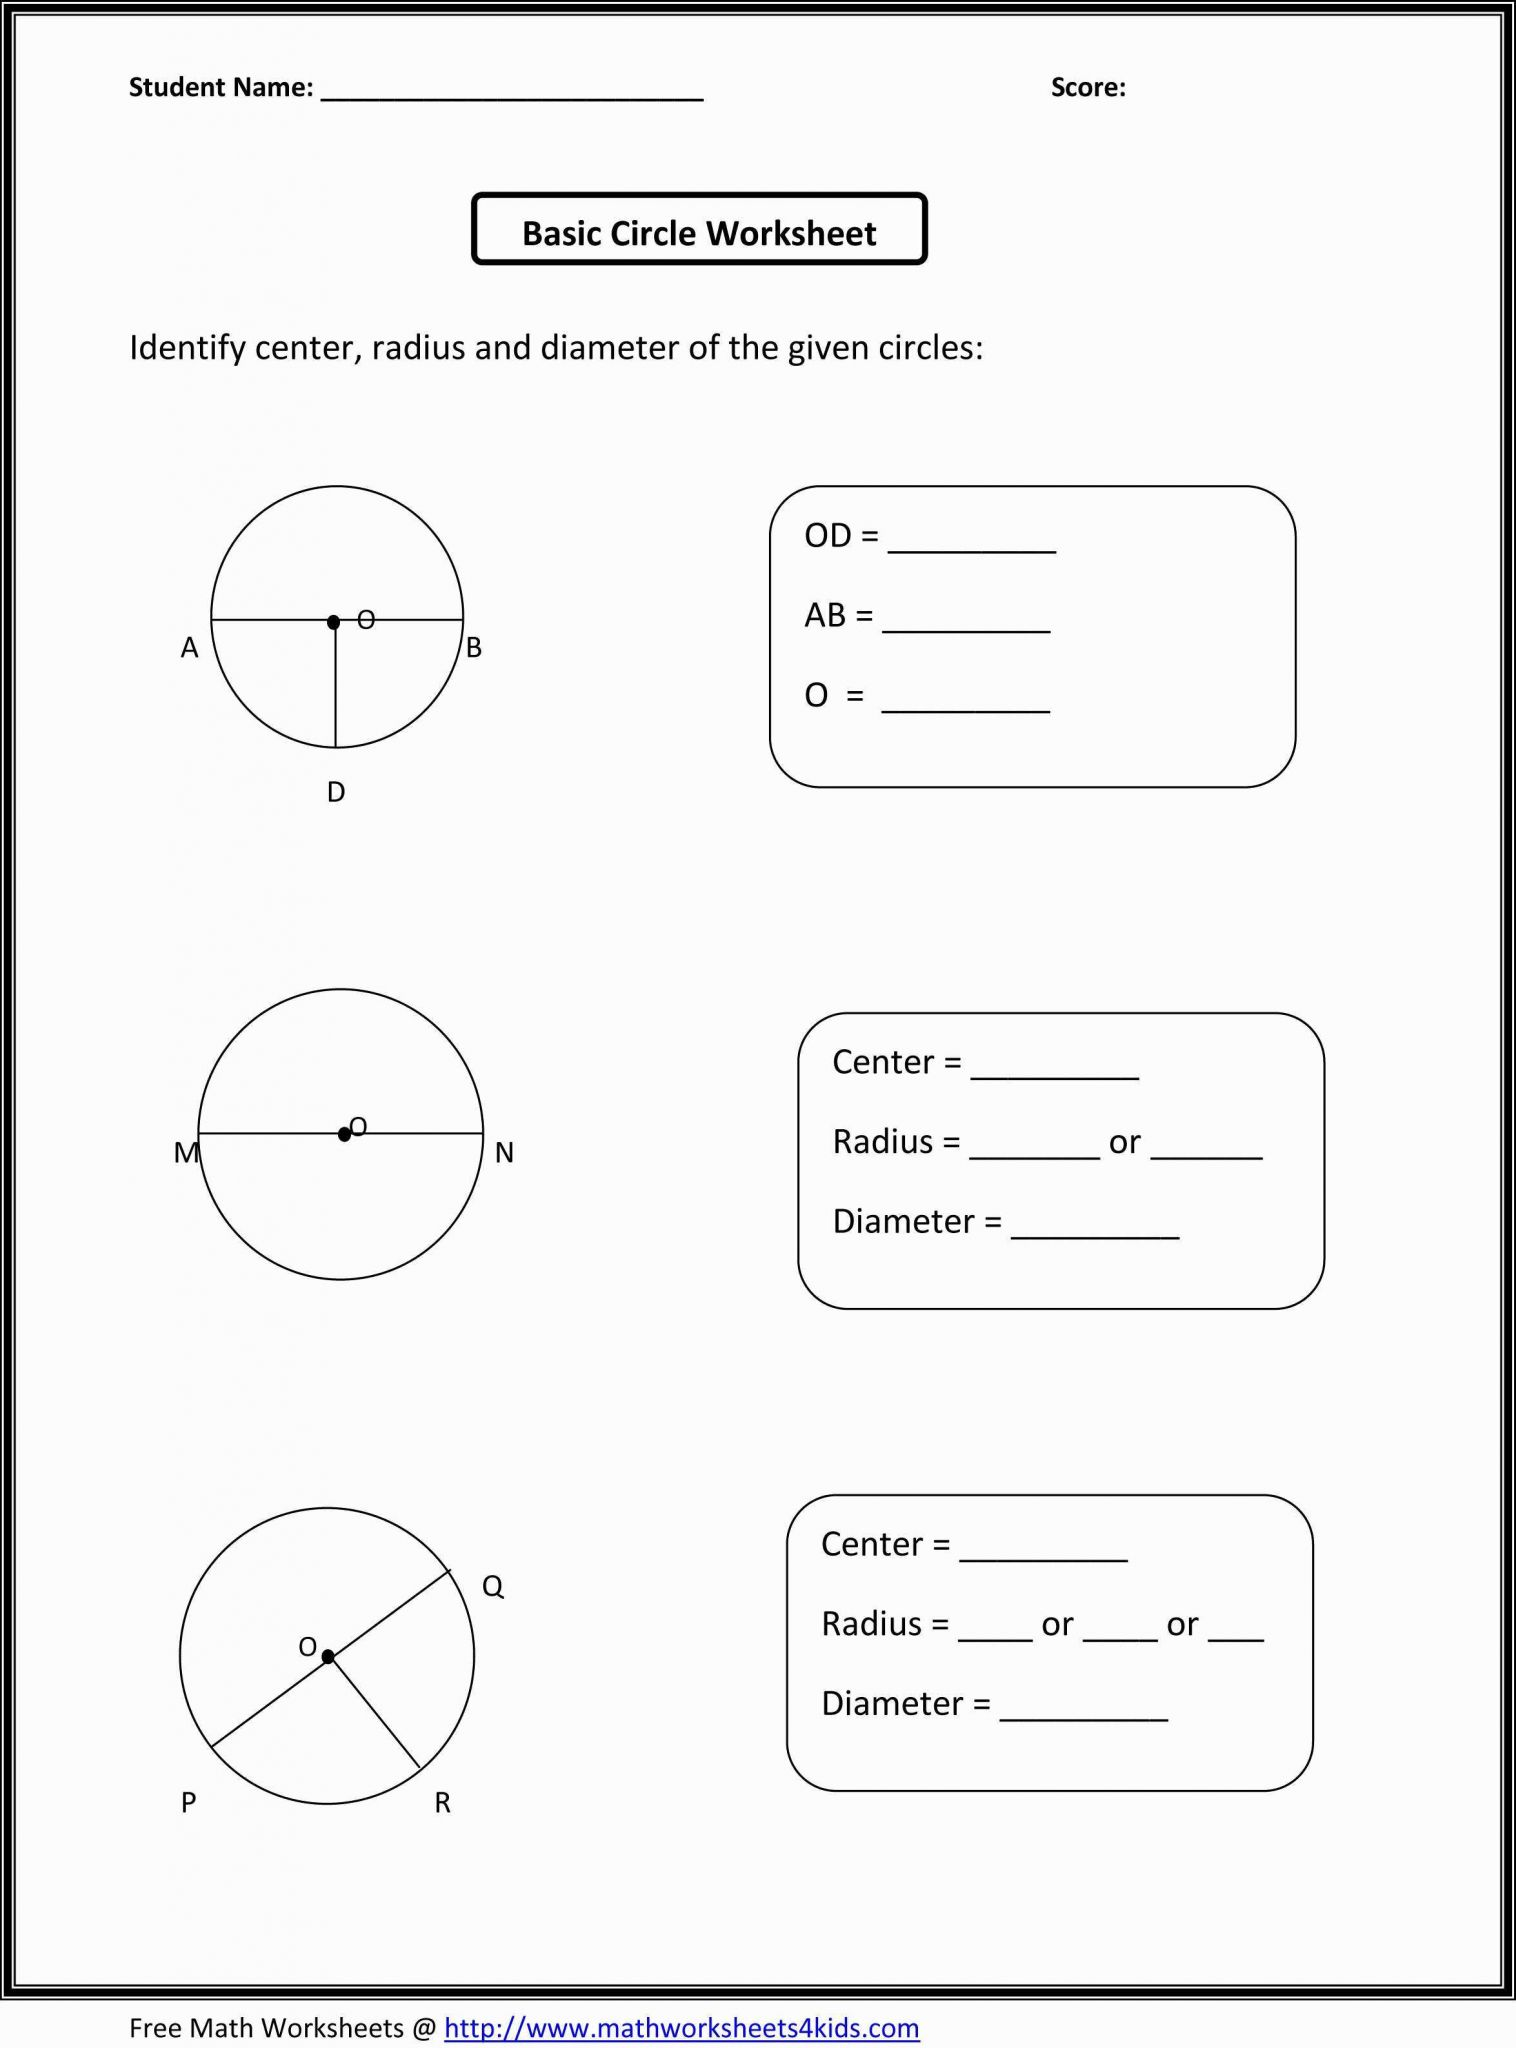 Managing A Checking Account Worksheet Answers or 13 Best Math Fact Worksheet Generator